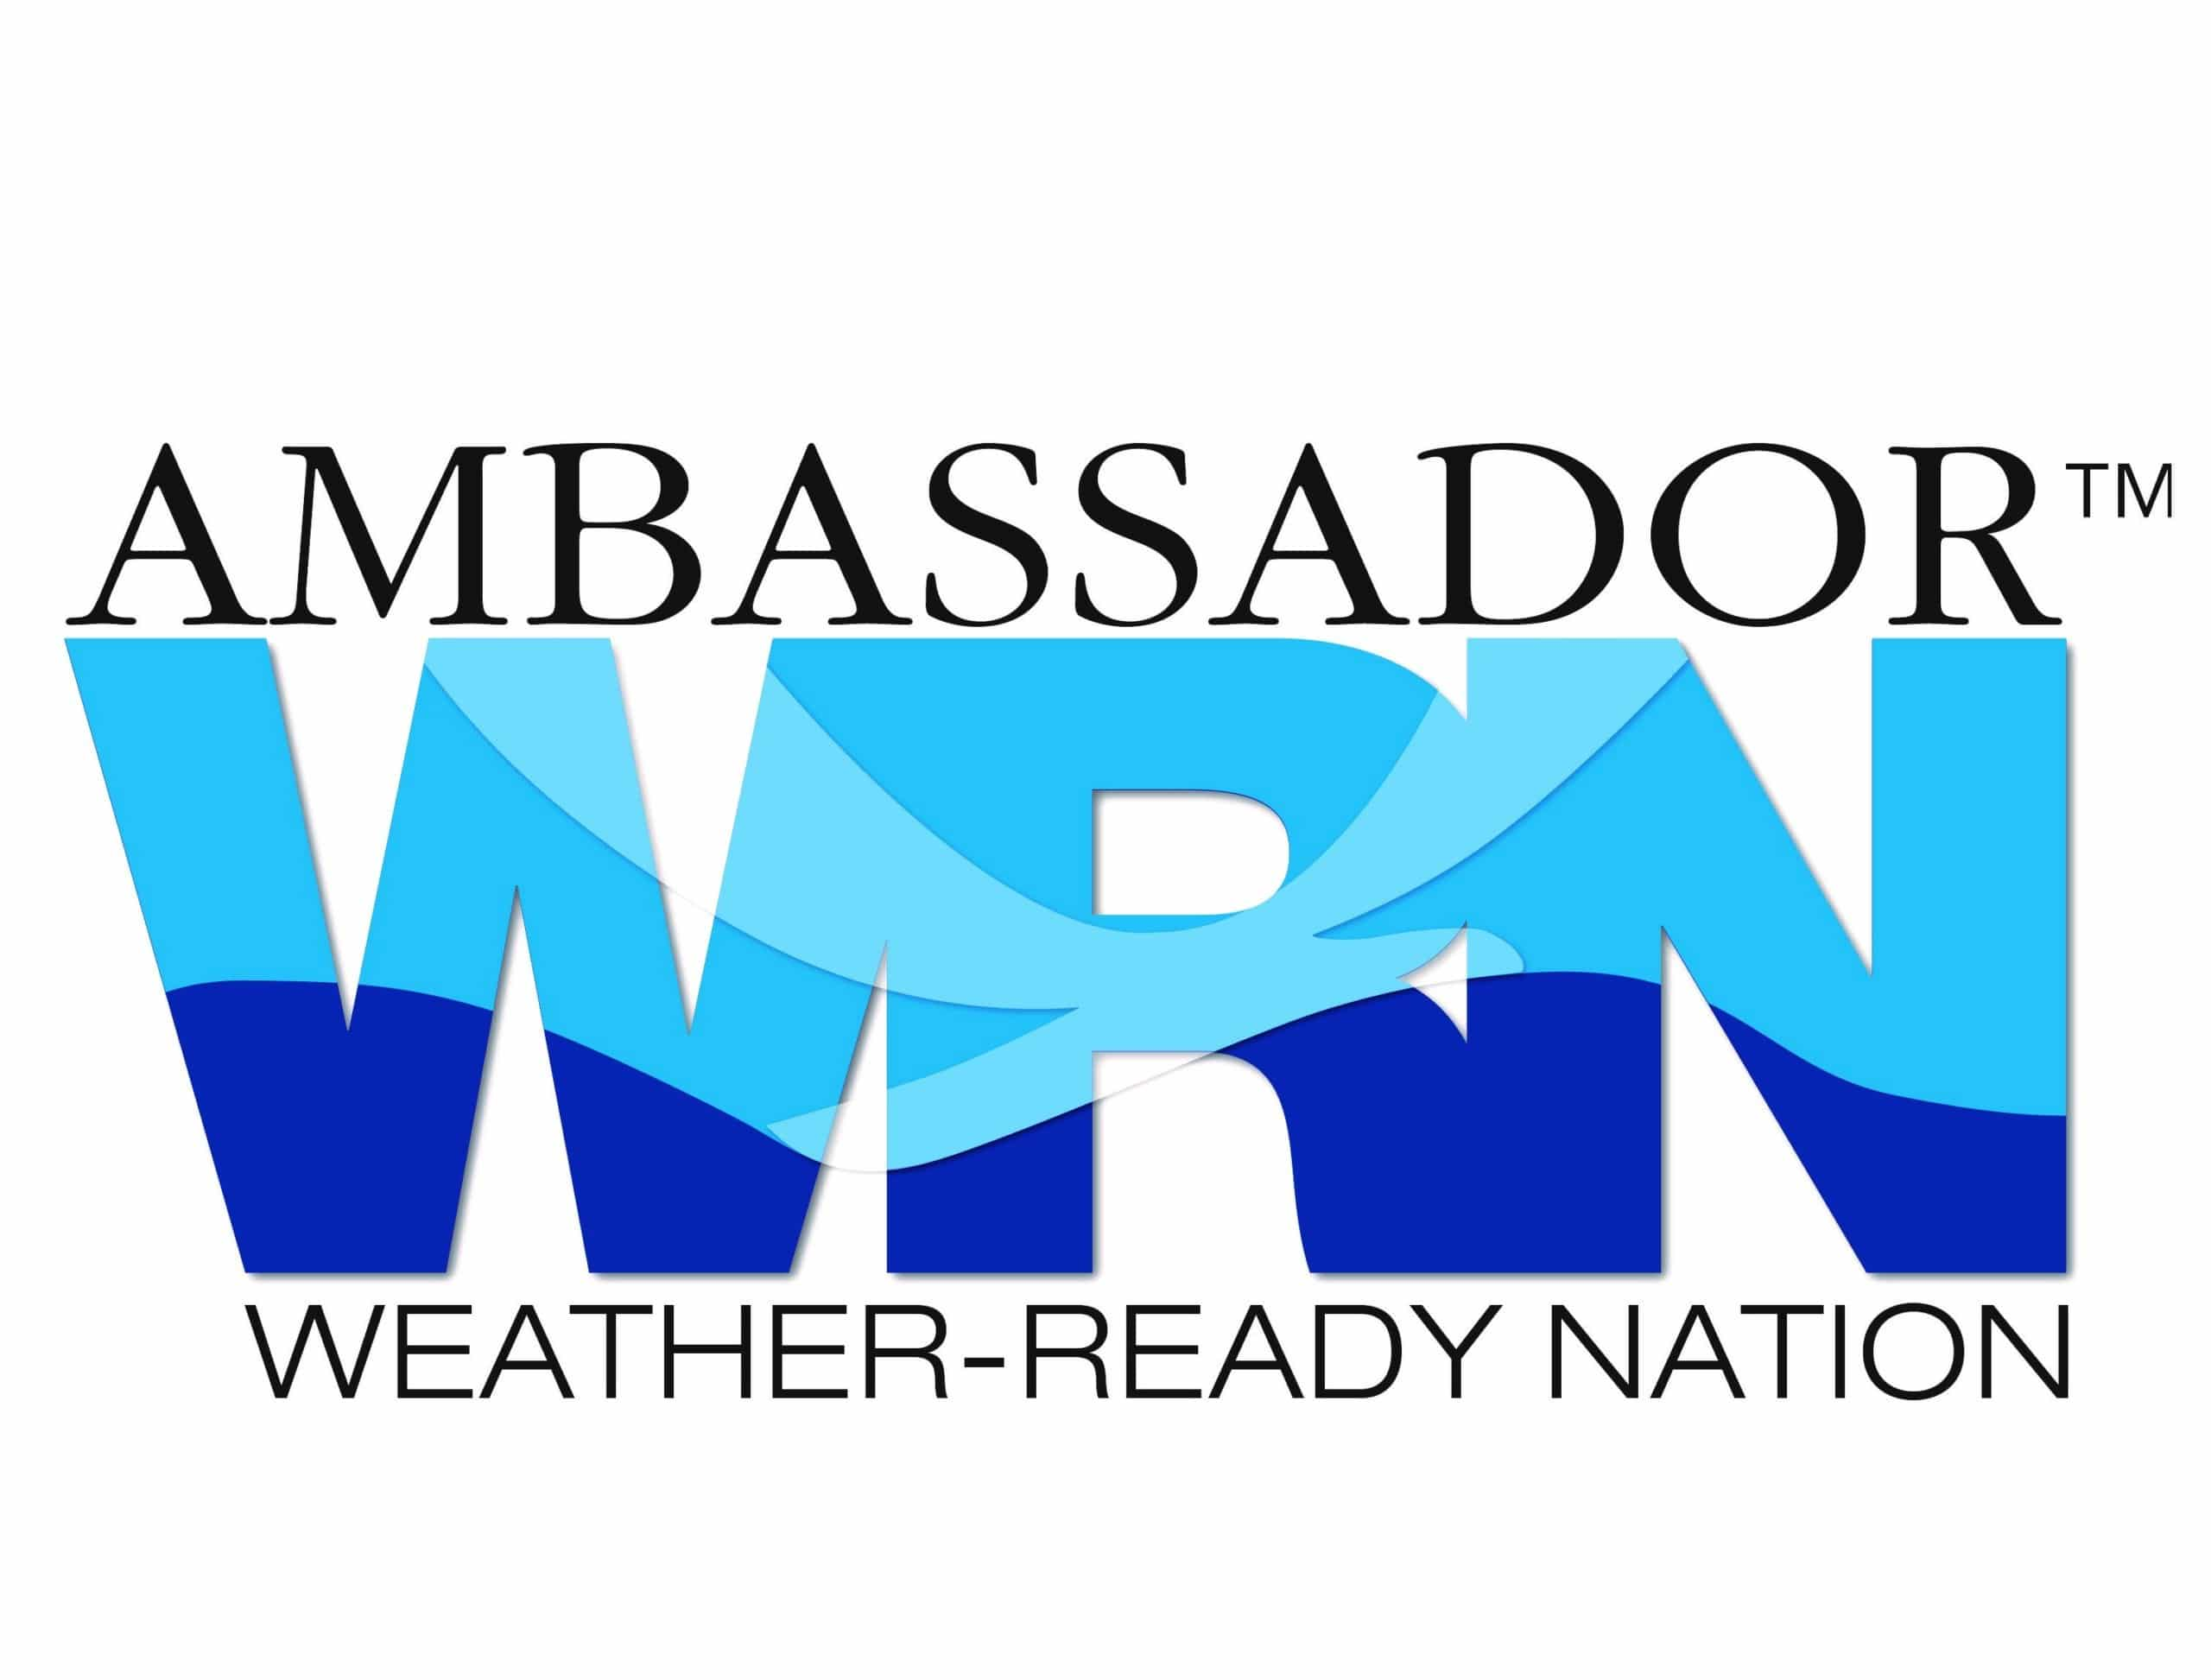 CMS Compliance Group Emergency Preparedness Weather-Ready Nation